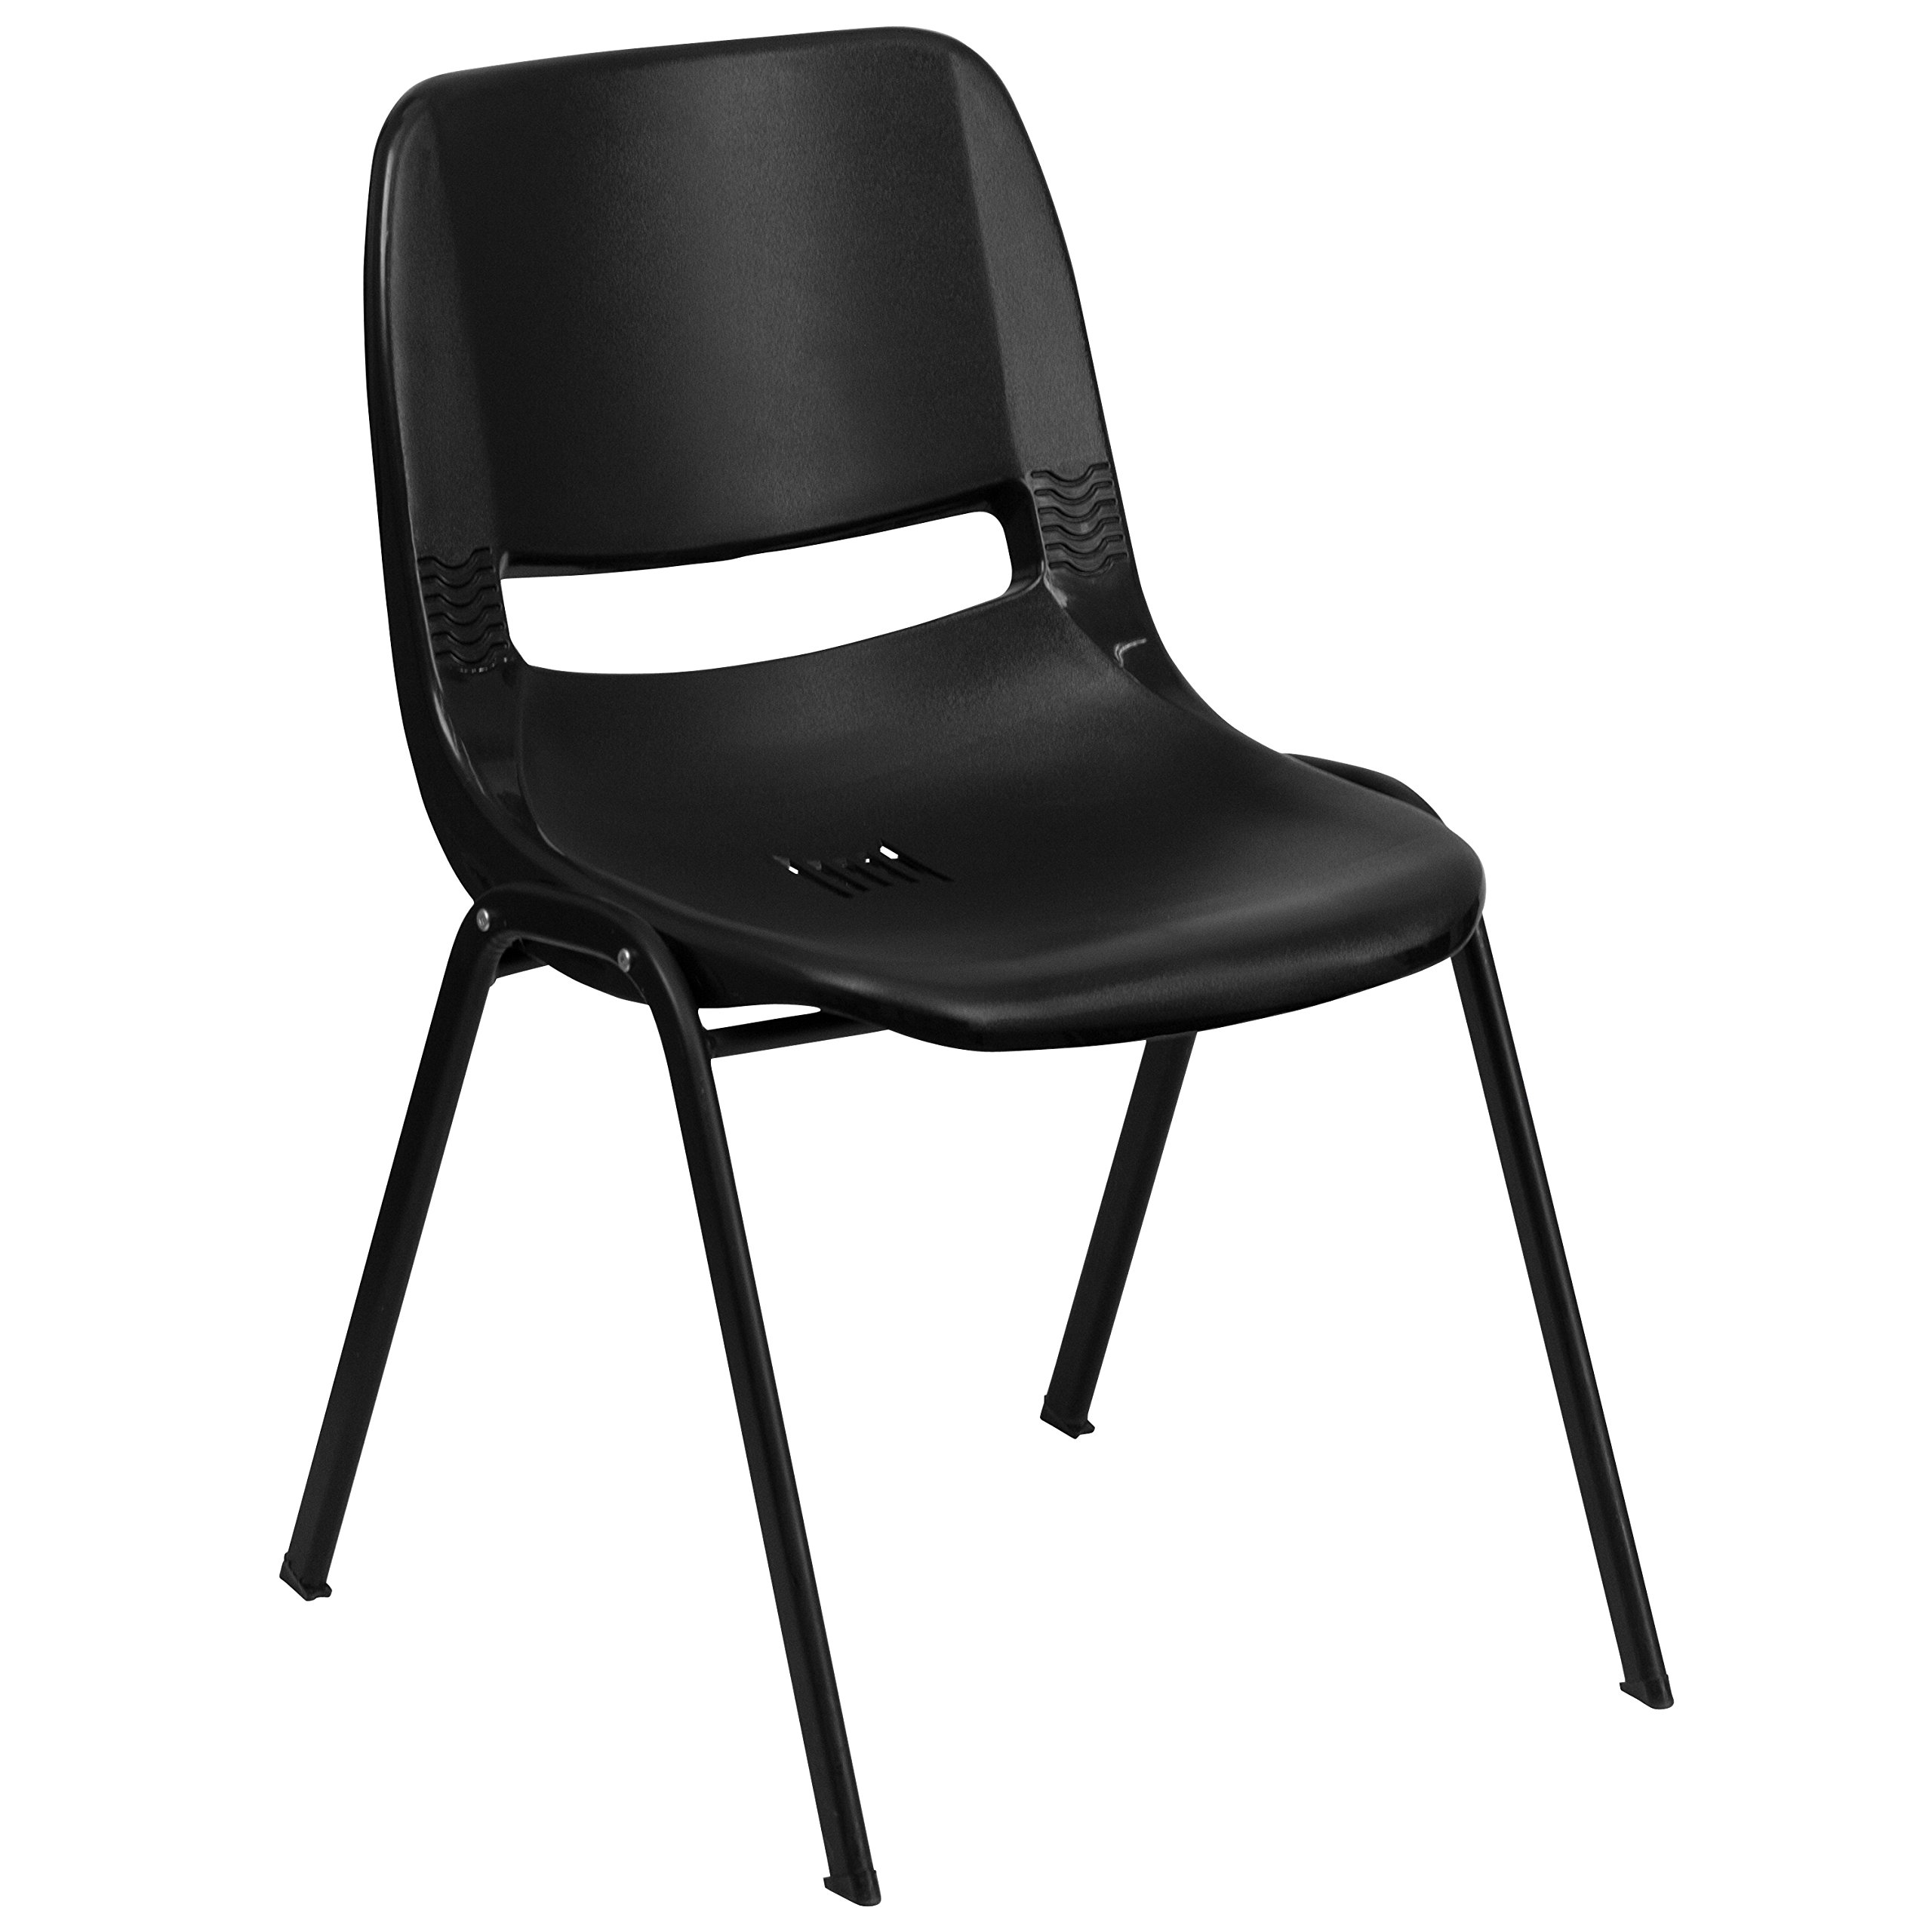 Flash Furniture HERCULES Series 440 lb. Capacity Kid's Black Ergonomic Shell Stack Chair with Black Frame and 14'' Seat Height by Flash Furniture